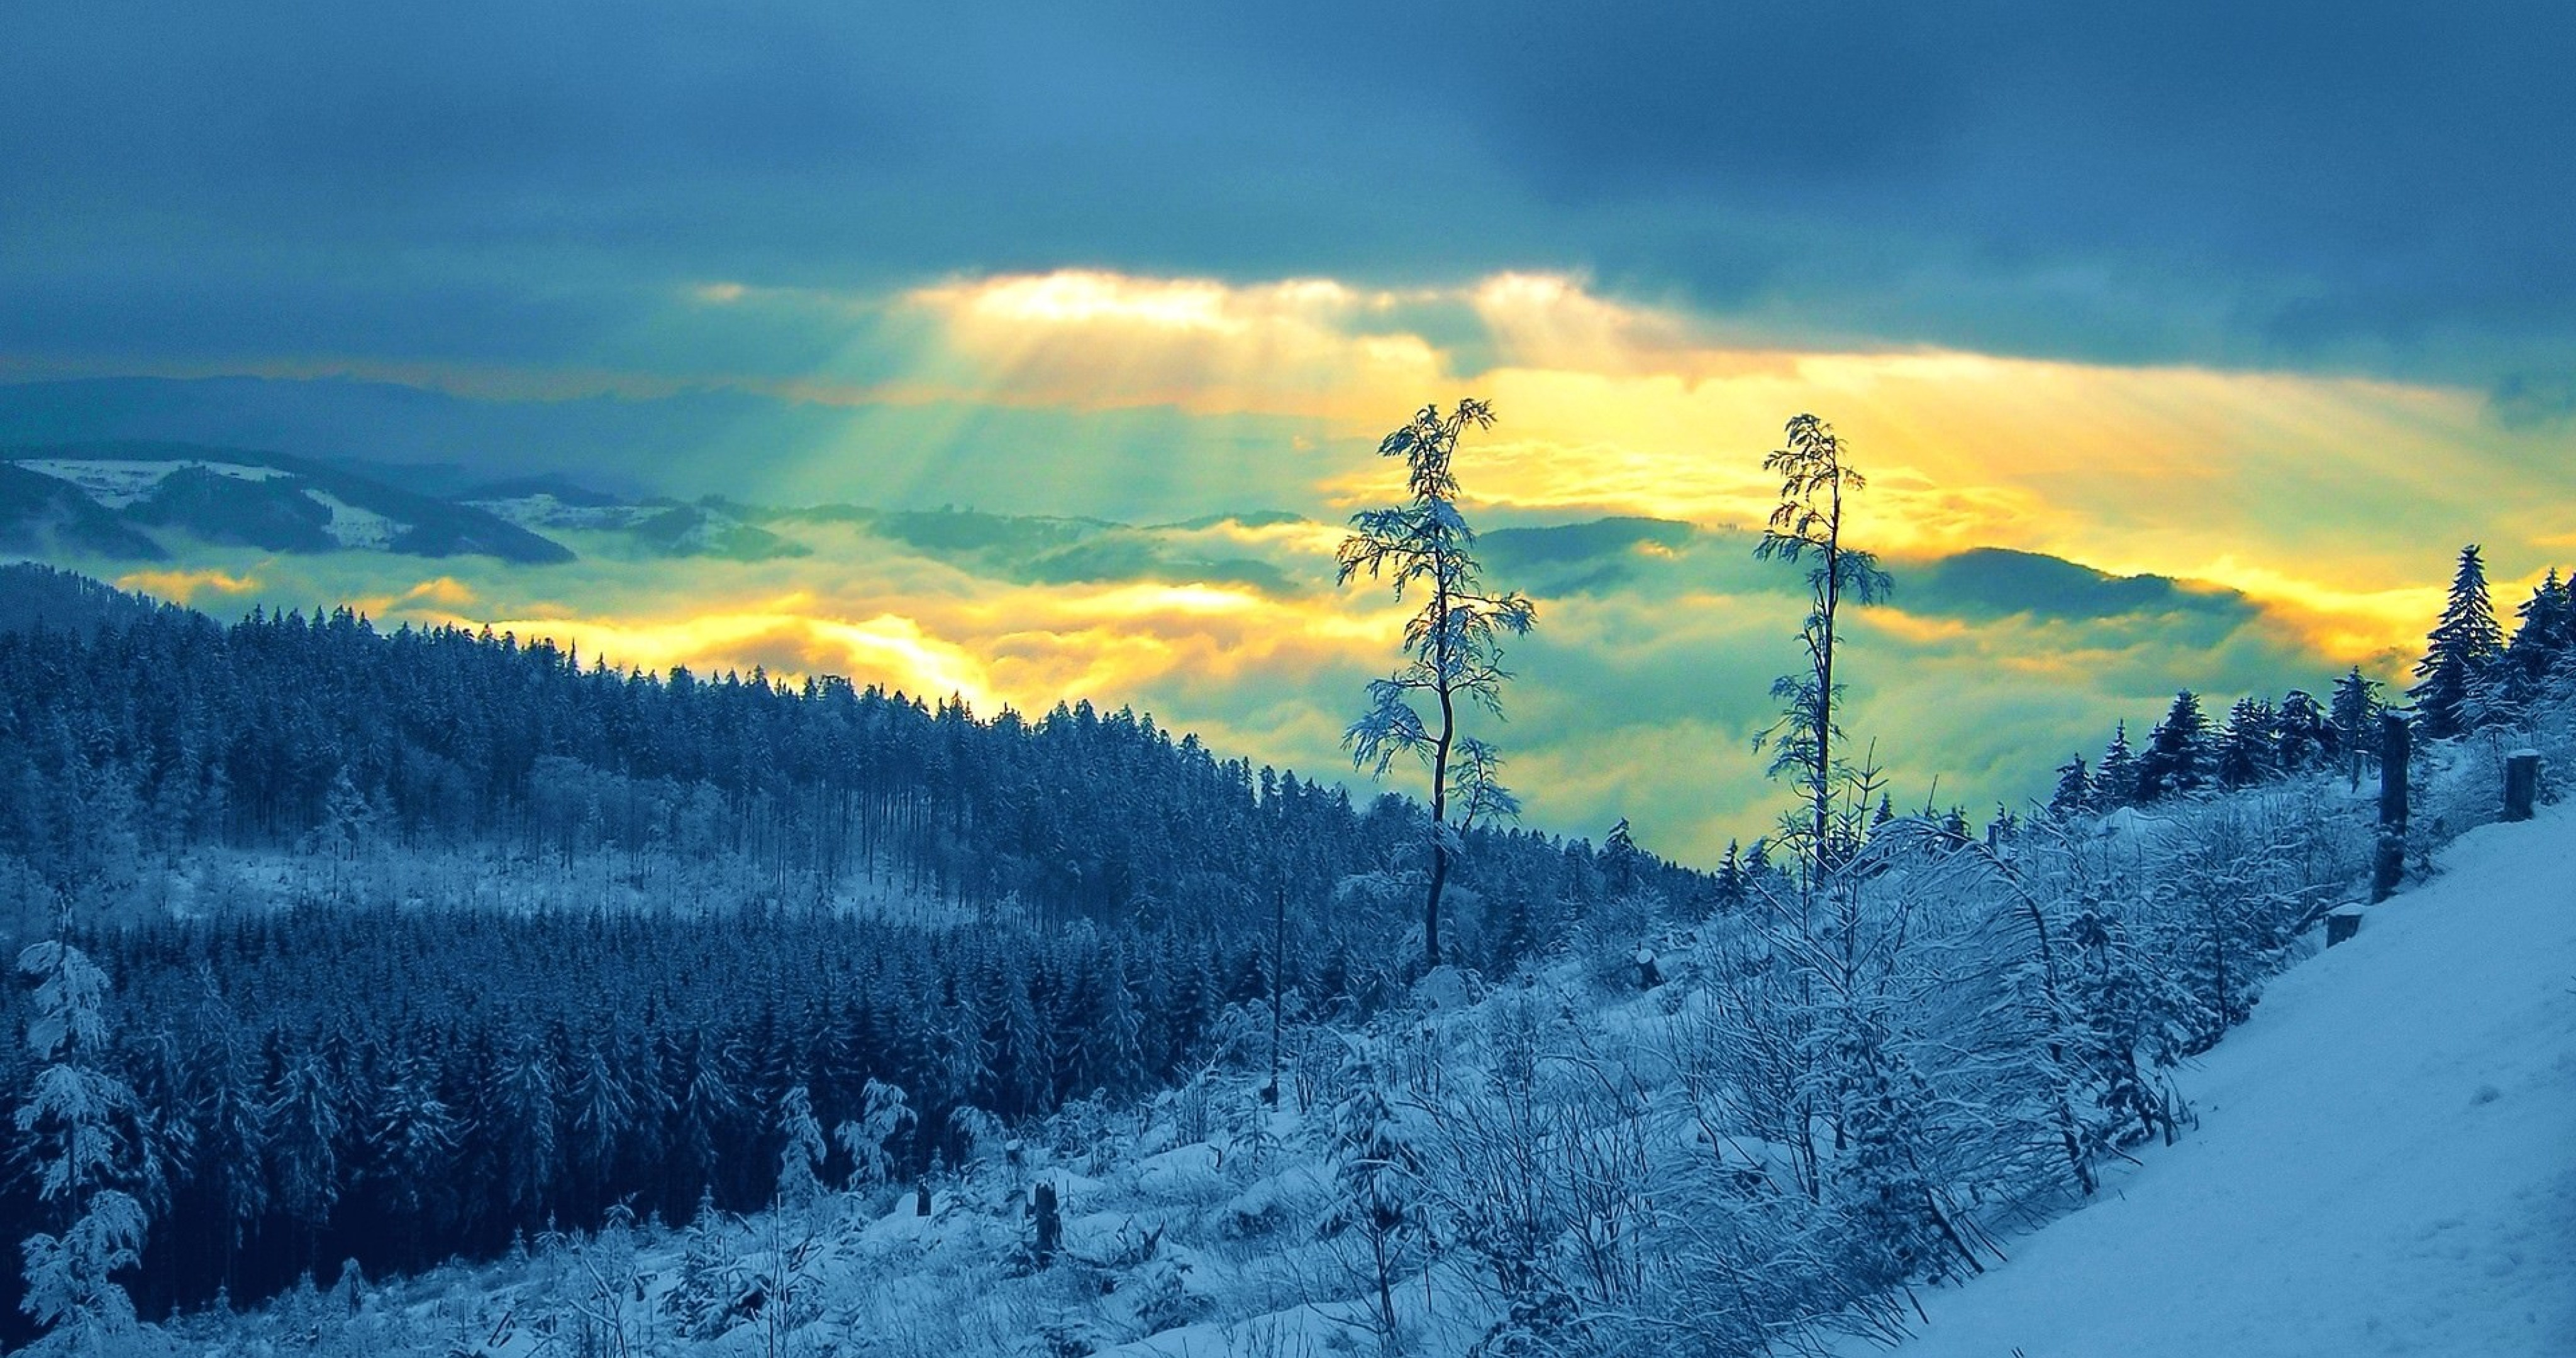 Download Wallpaper High Quality Winter - 72226-blue-winter-mountains-wallpaper-4k-ultra-hd-wallpaper__nature  Pictures_512095.jpg